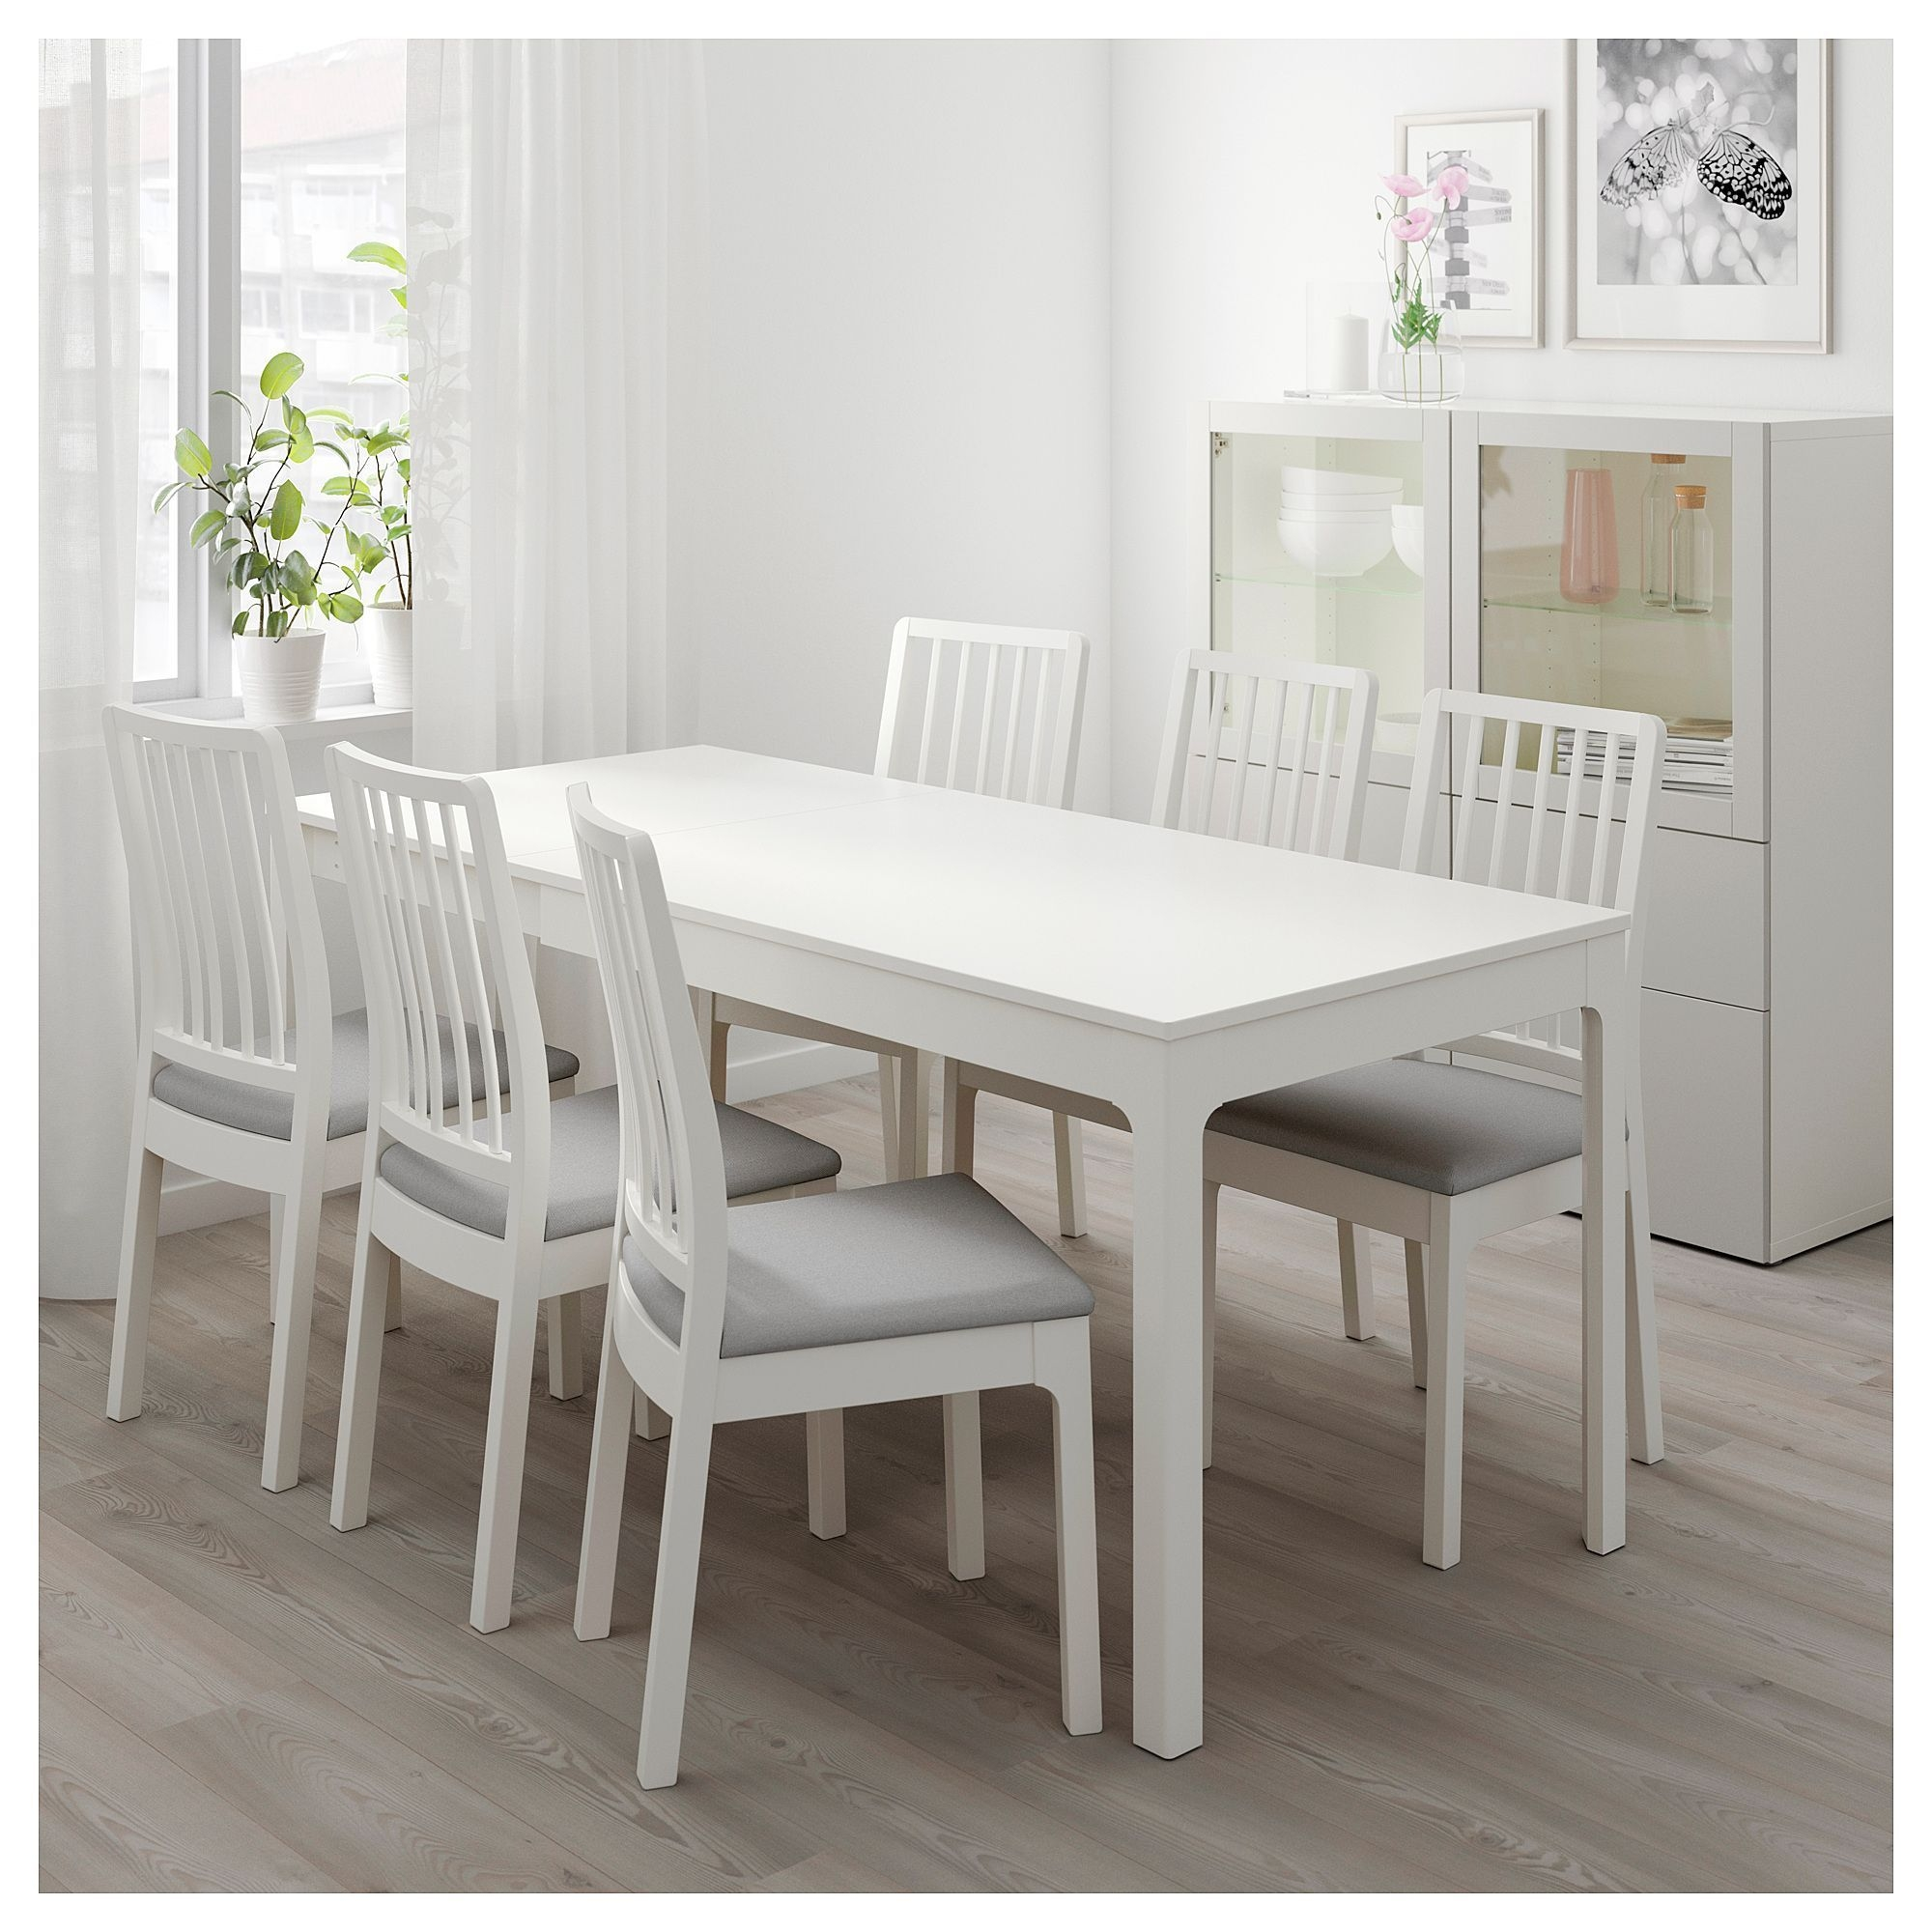 "Ekedalen  Ekedalen Table And 4 Chairs  White Orrsta Light Gray 47 1470 78 "" 120180 Cm"